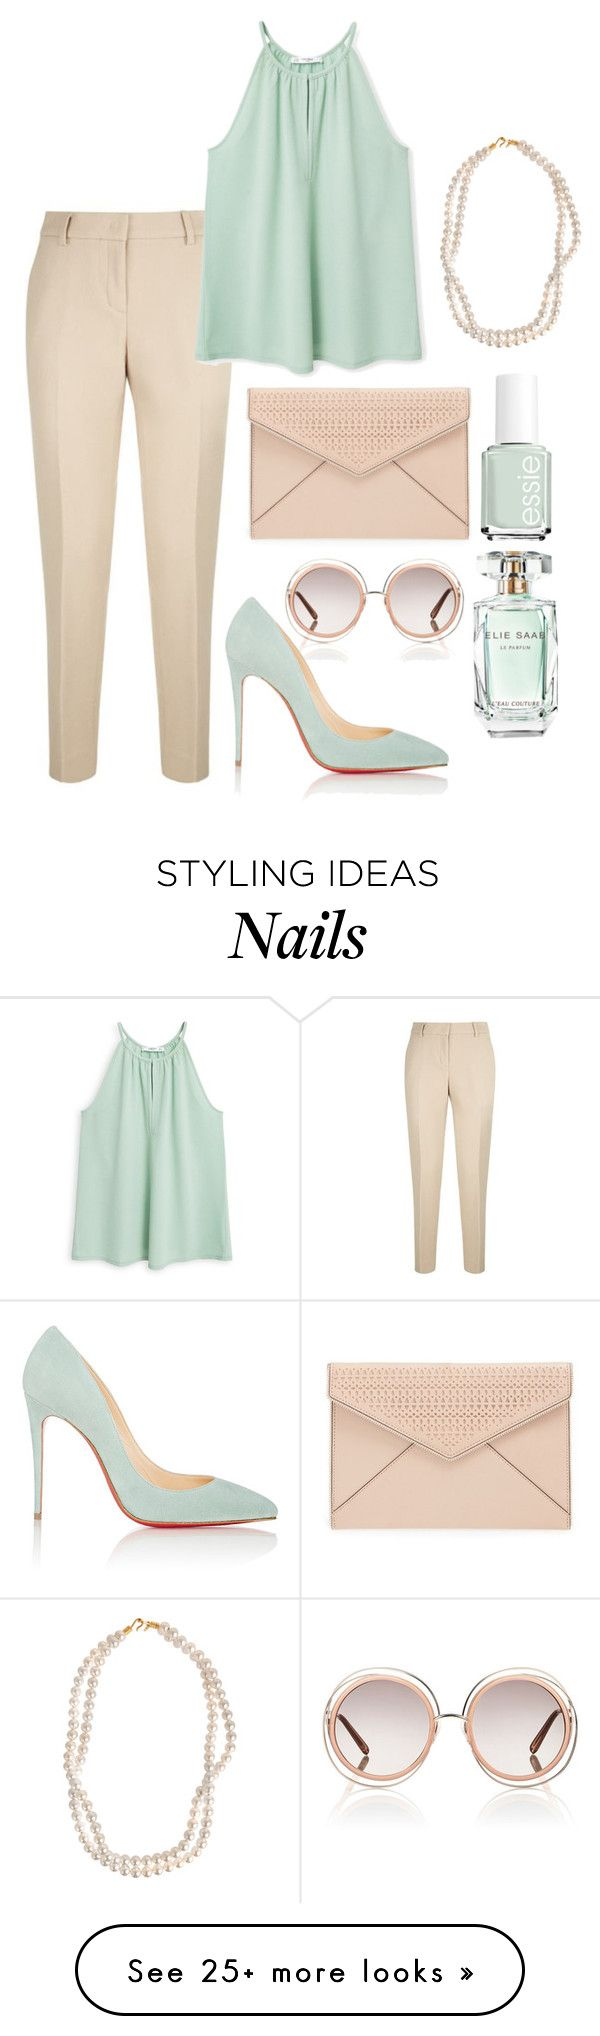 """."" by erixx on Polyvore featuring Chloé, DKNY, MANGO, Christian Louboutin, Rebecca Minkoff, STELLA McCARTNEY, Essie and Elie Saab"